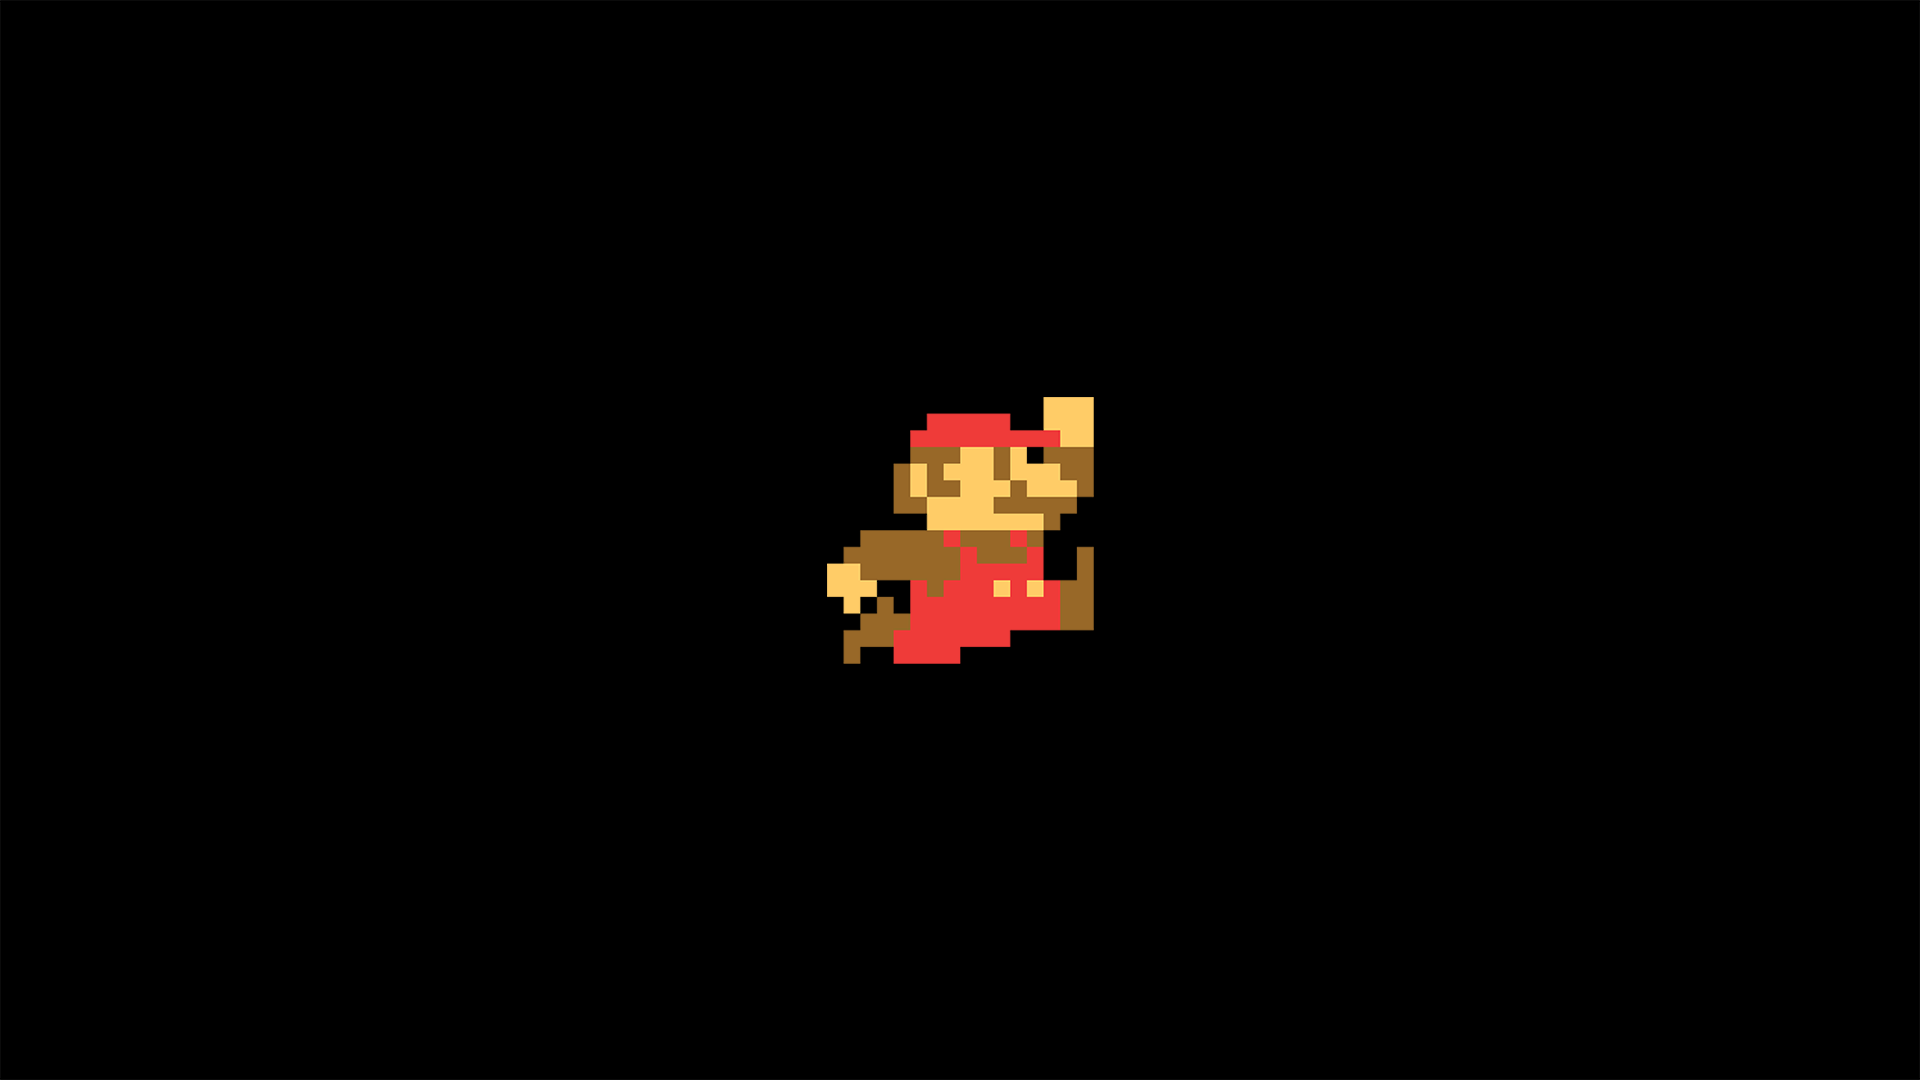 super mario minimalism, hd cartoons, 4k wallpapers, images